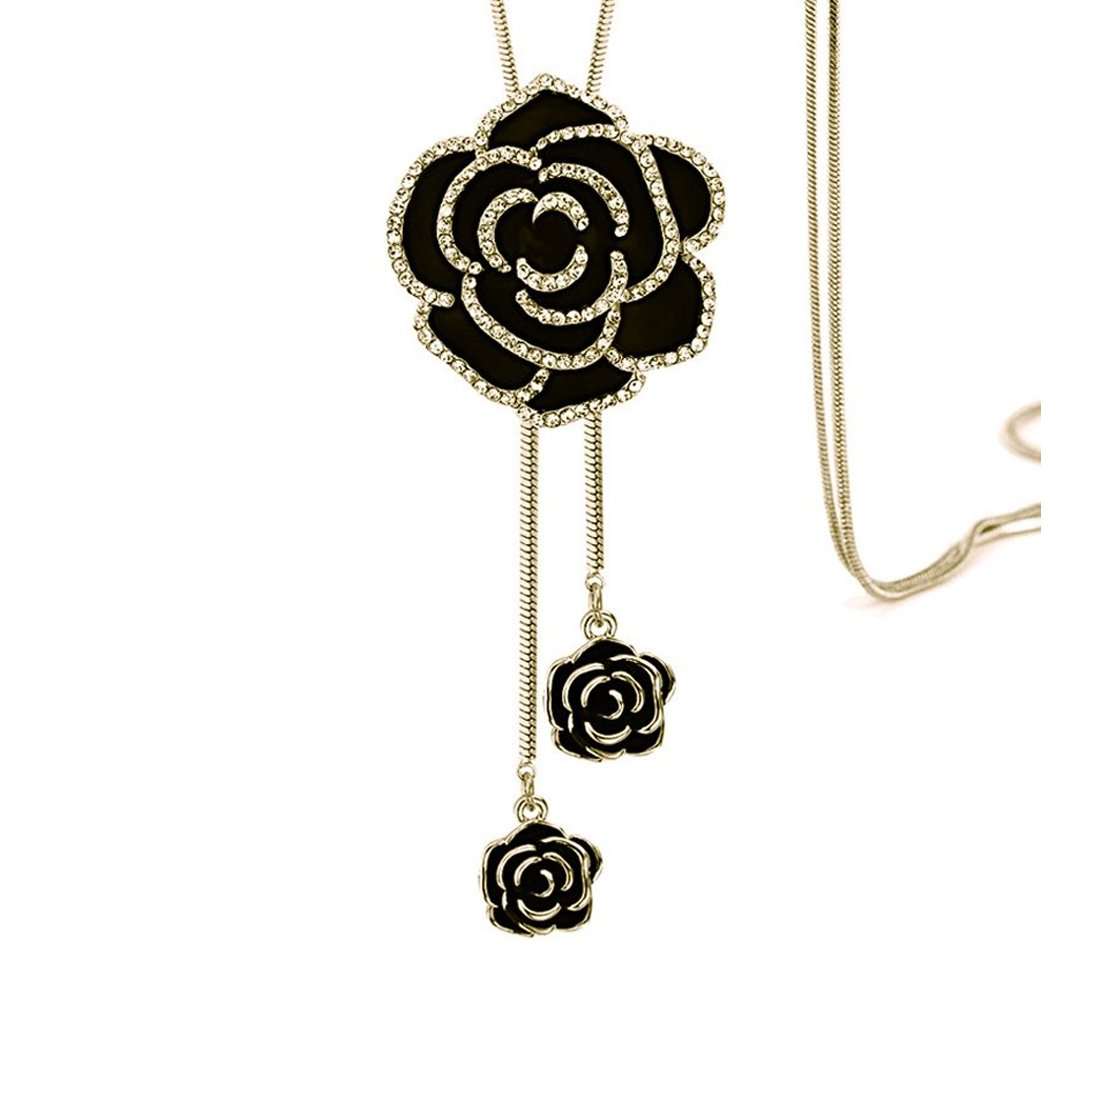 NOVADAB Dazzling Black Rose Petal Neck-Piece With Long Chain Necklace, Lovely Necklace for Her❤ (Gold)